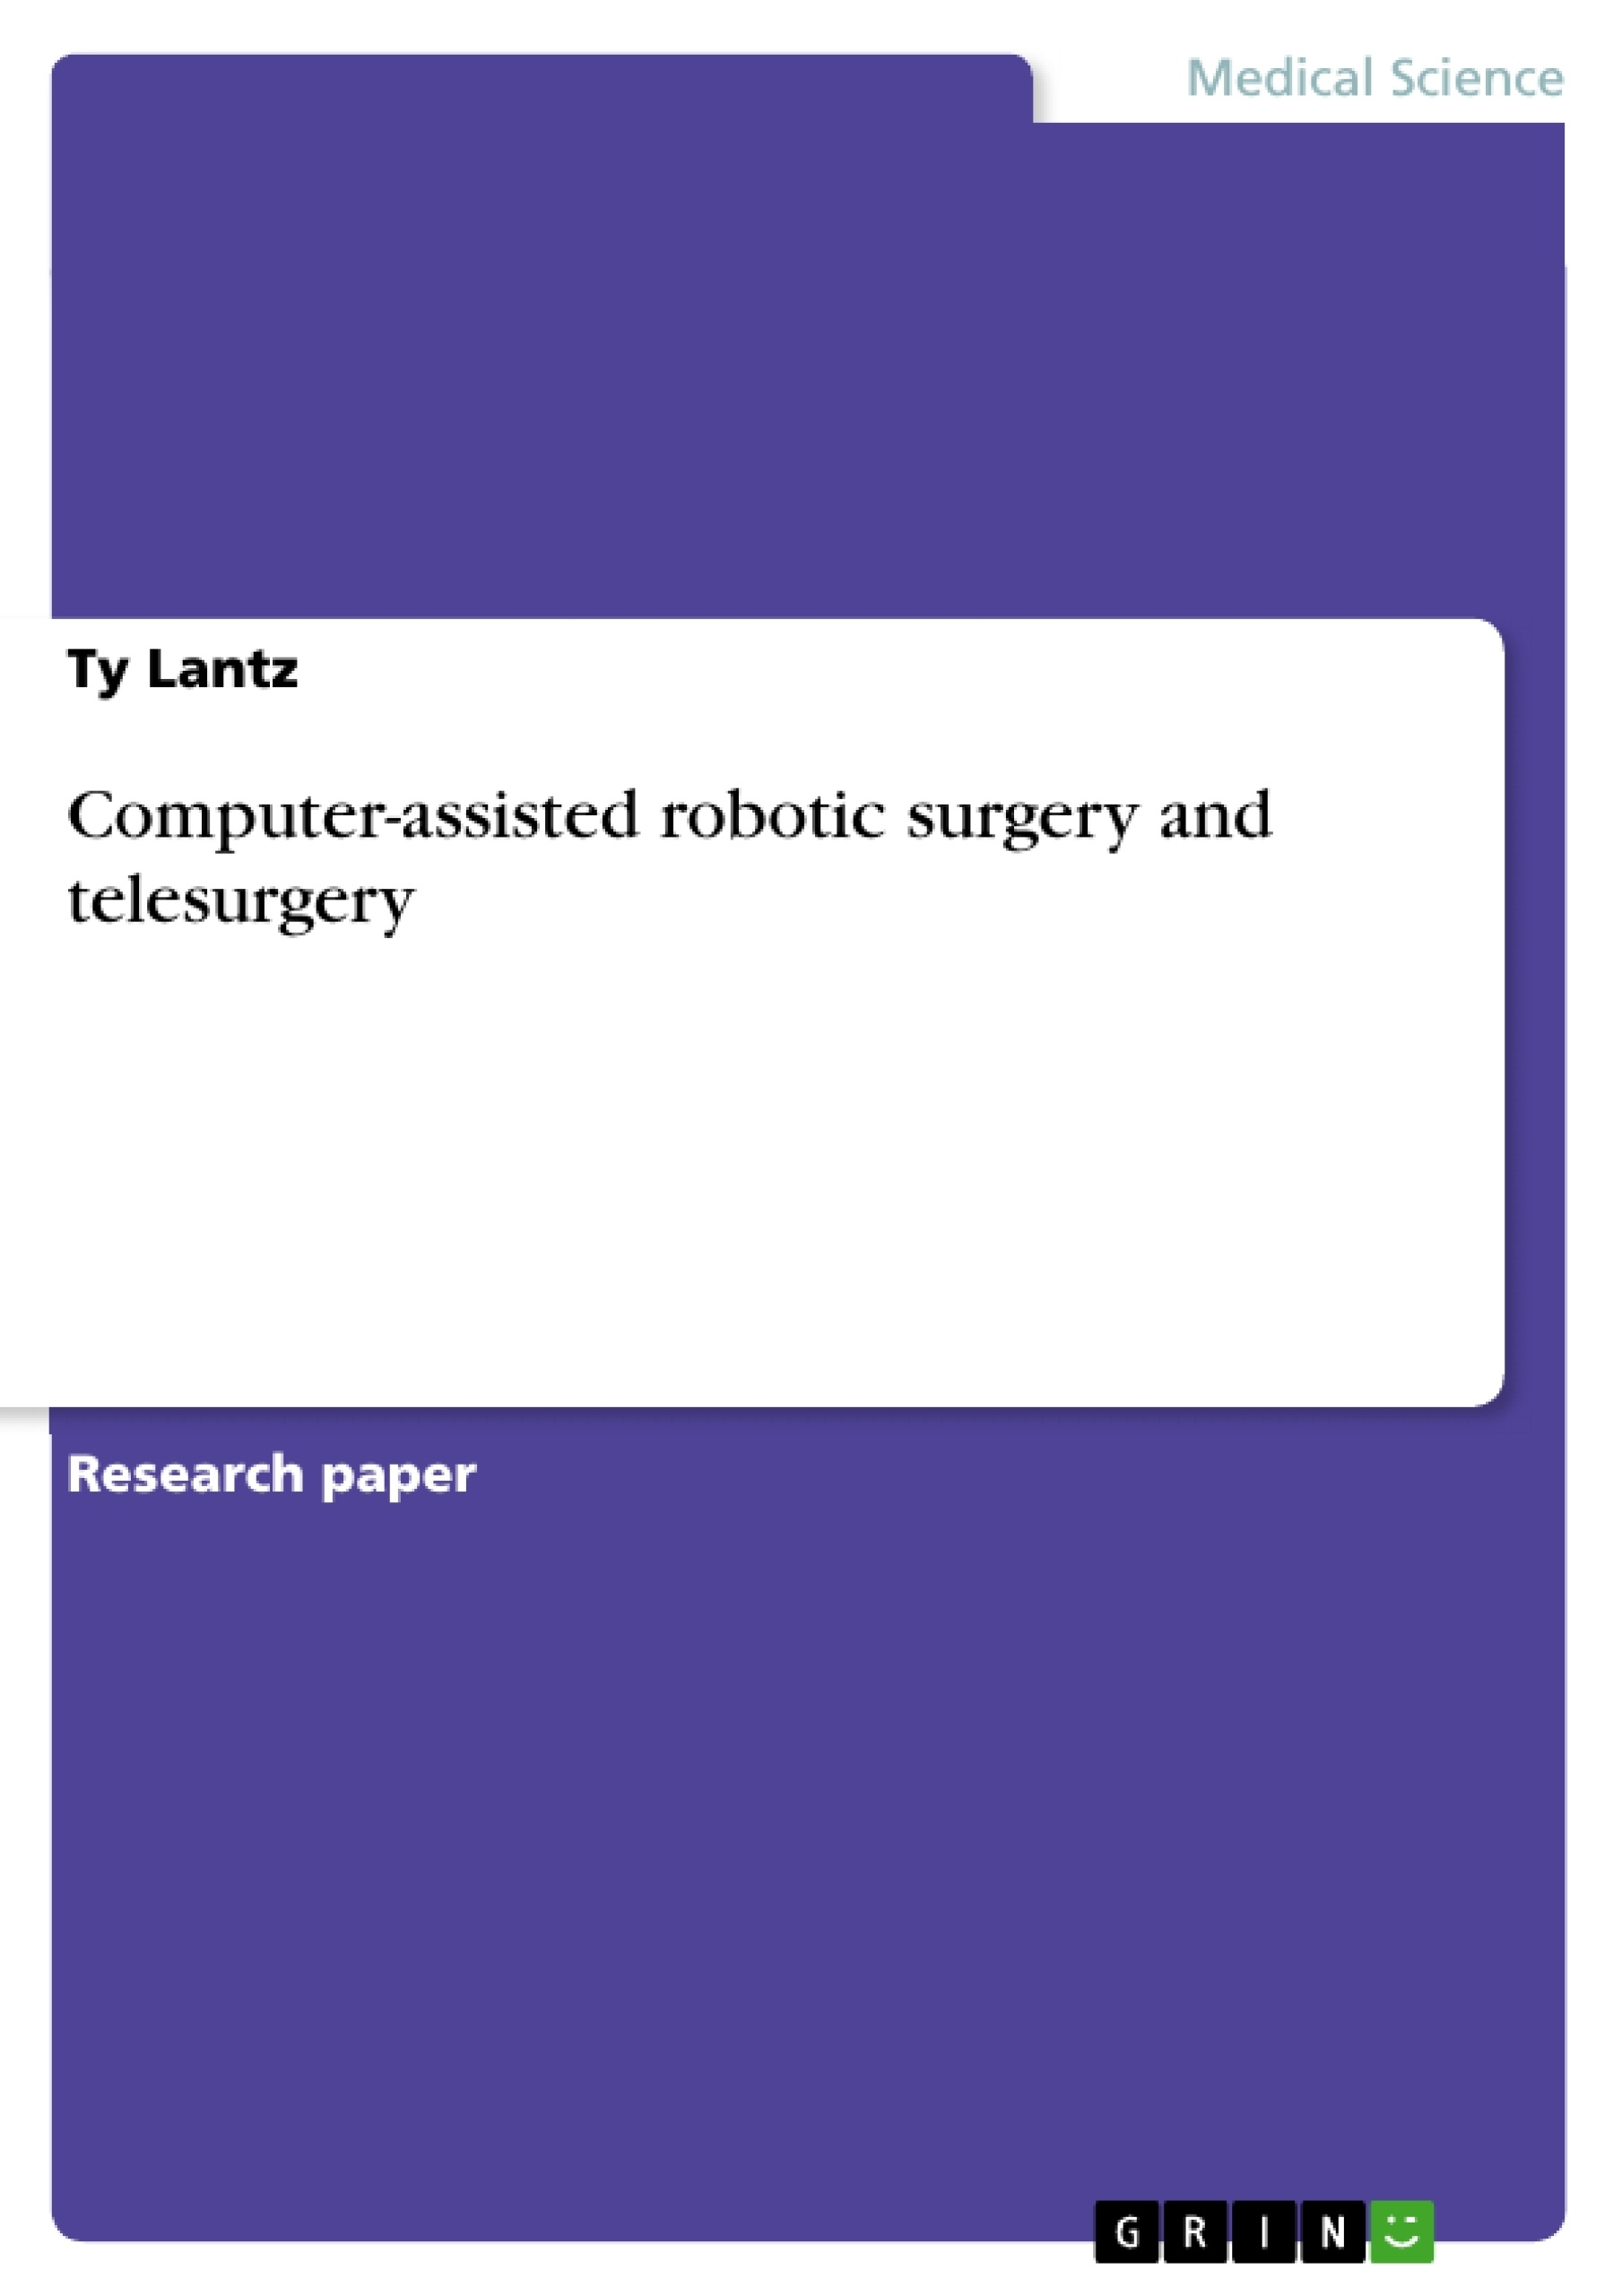 Title: Computer-assisted robotic surgery and telesurgery